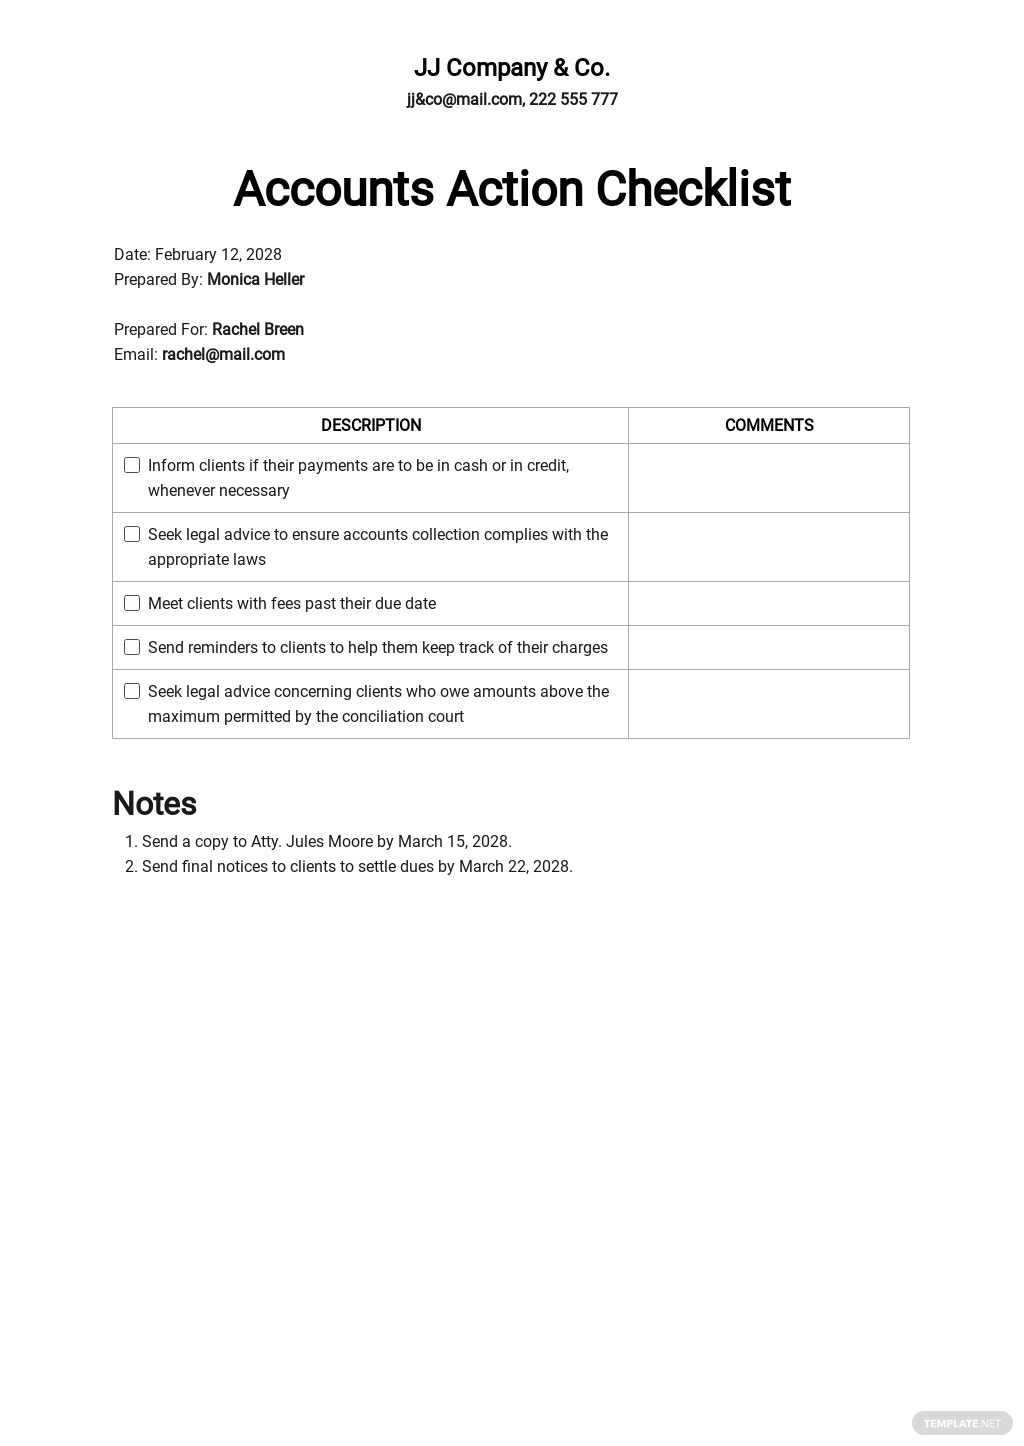 Checklist Action to Improve Collection of Accounts Template